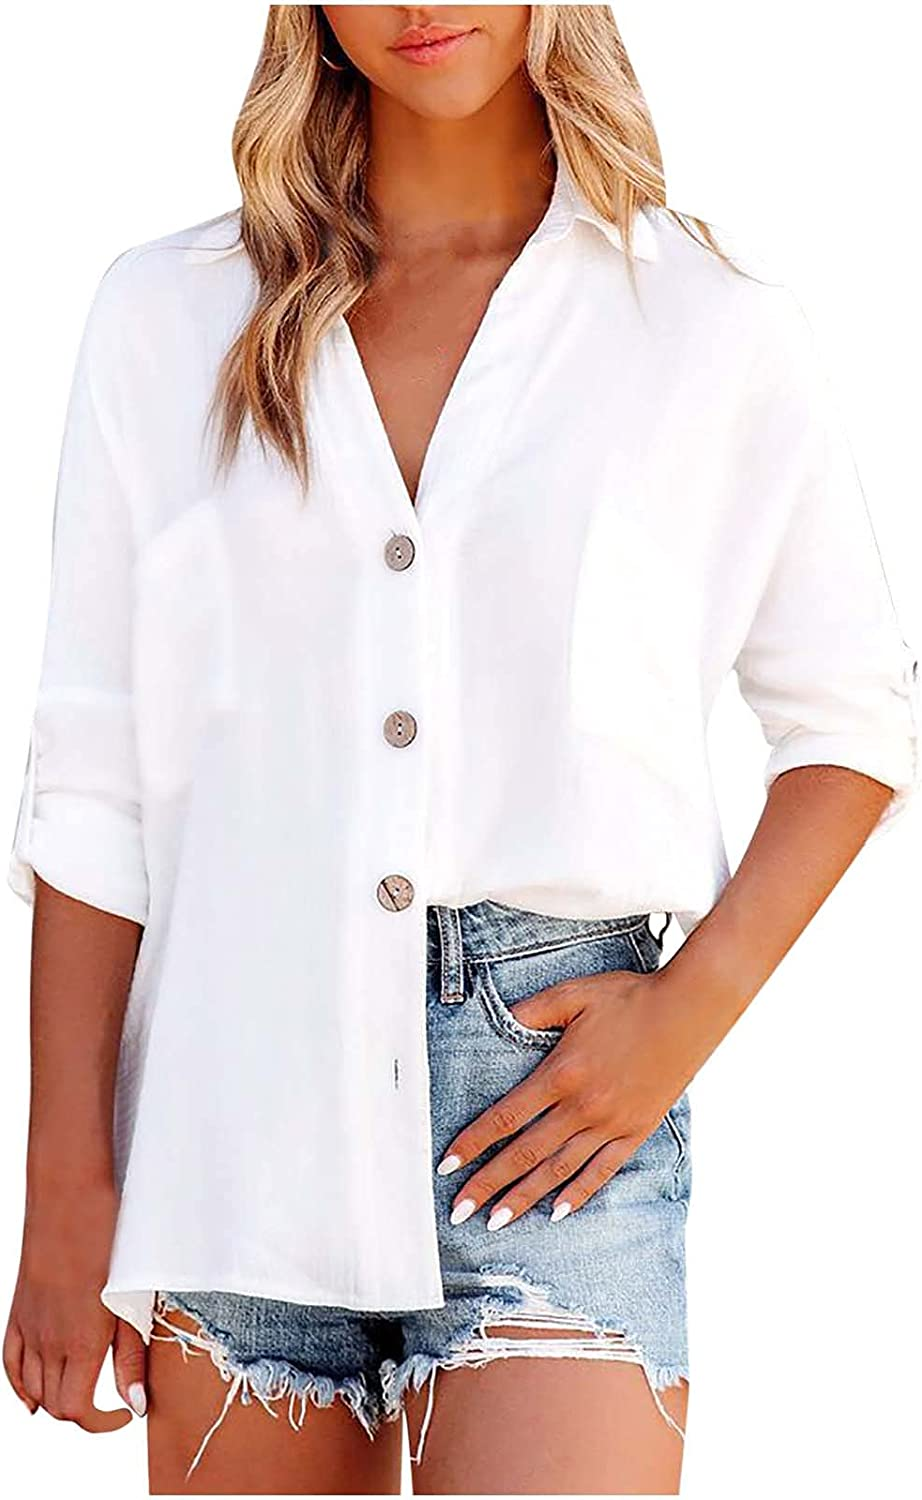 TIMIFIS Fashion Shirts for Women Long Sleeve Tunic Tops Loose Fit Buttons Blouse Solid Color T-Shirt with Pocket